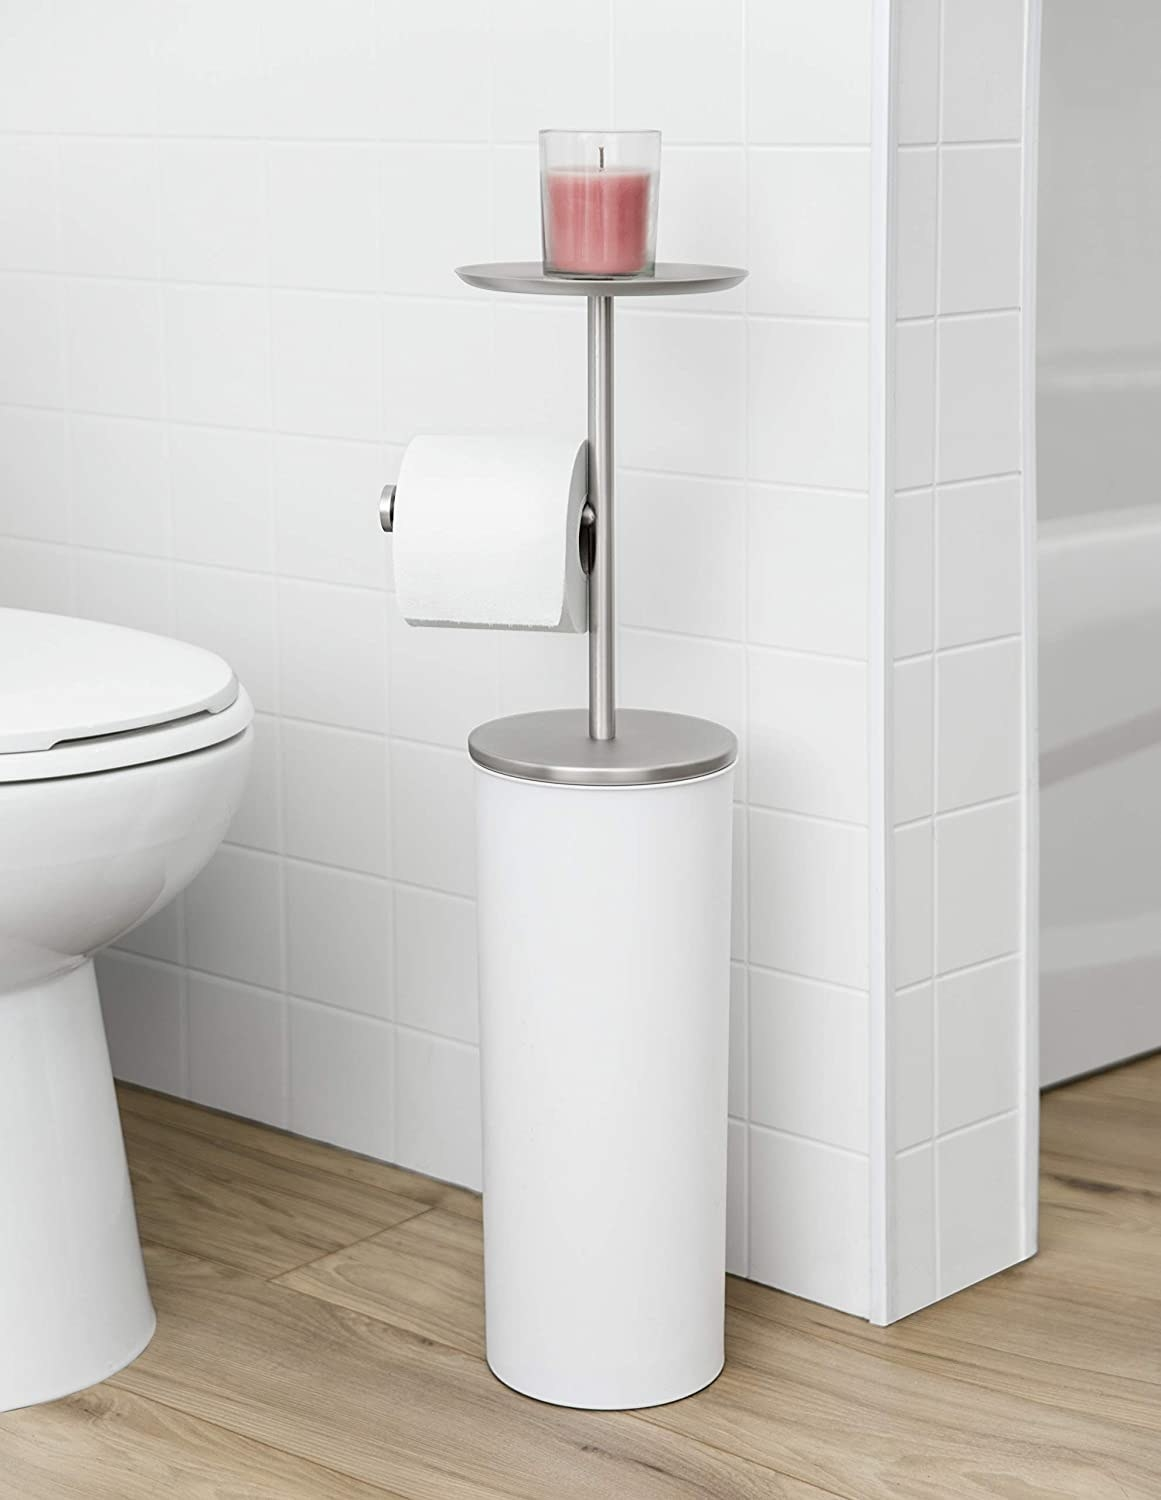 A toilet paper stand with several perches for toilet paper, phones, and candles